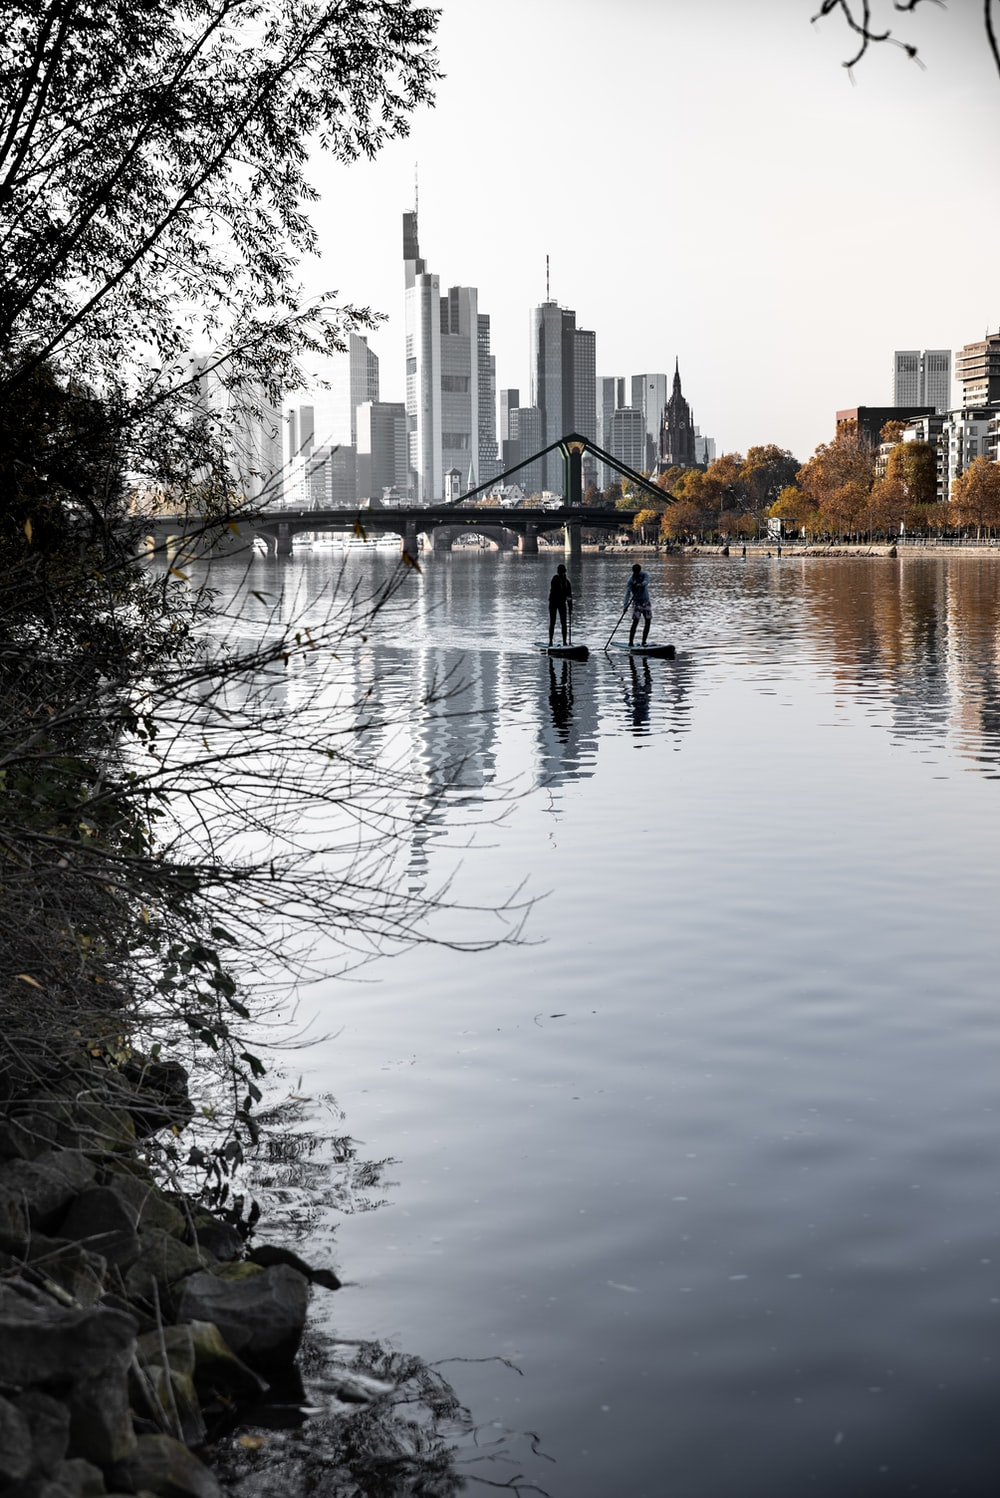 body of water near trees and buildings during daytime